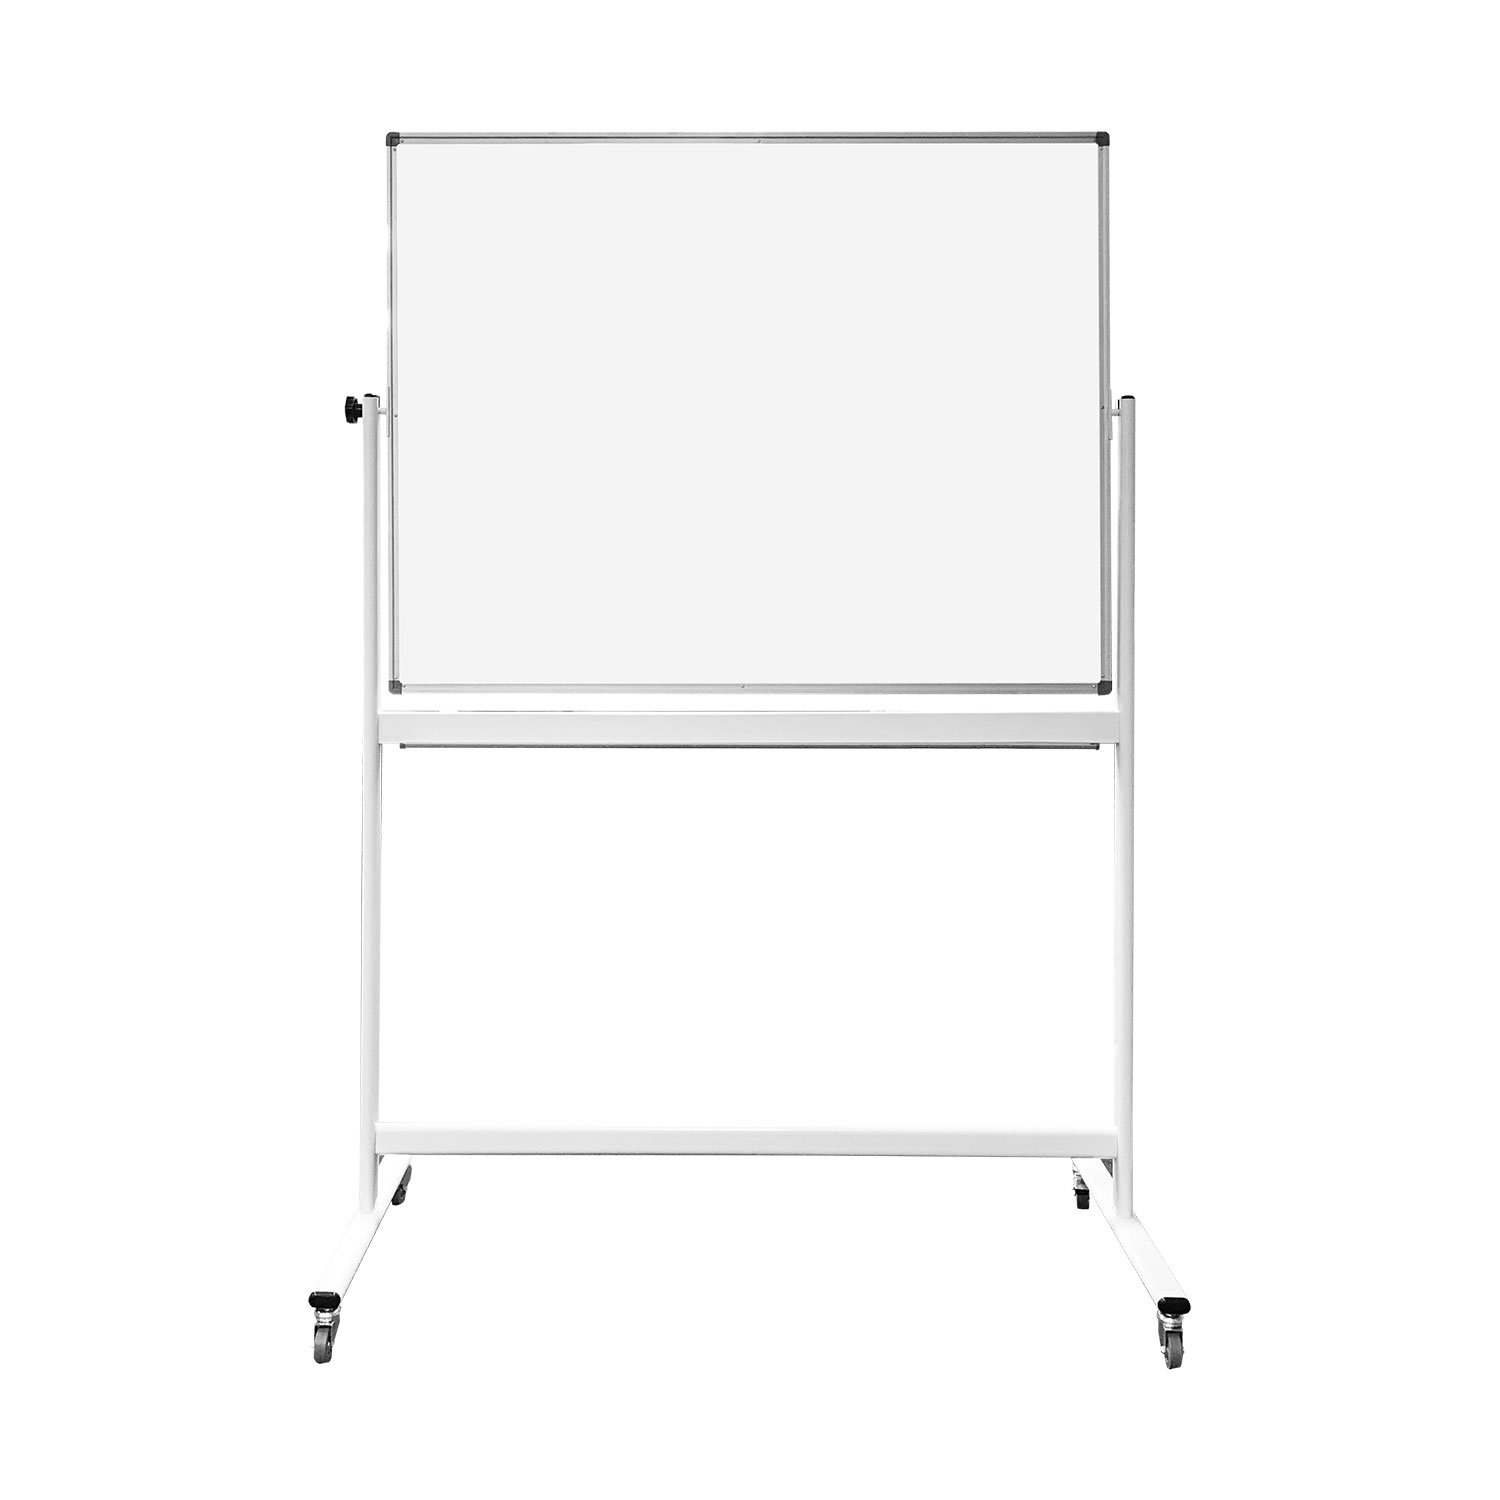 Thornton's Office Supplies Magnetic Reversible Mobile Dry Erase Whiteboard Easel, White/Silver